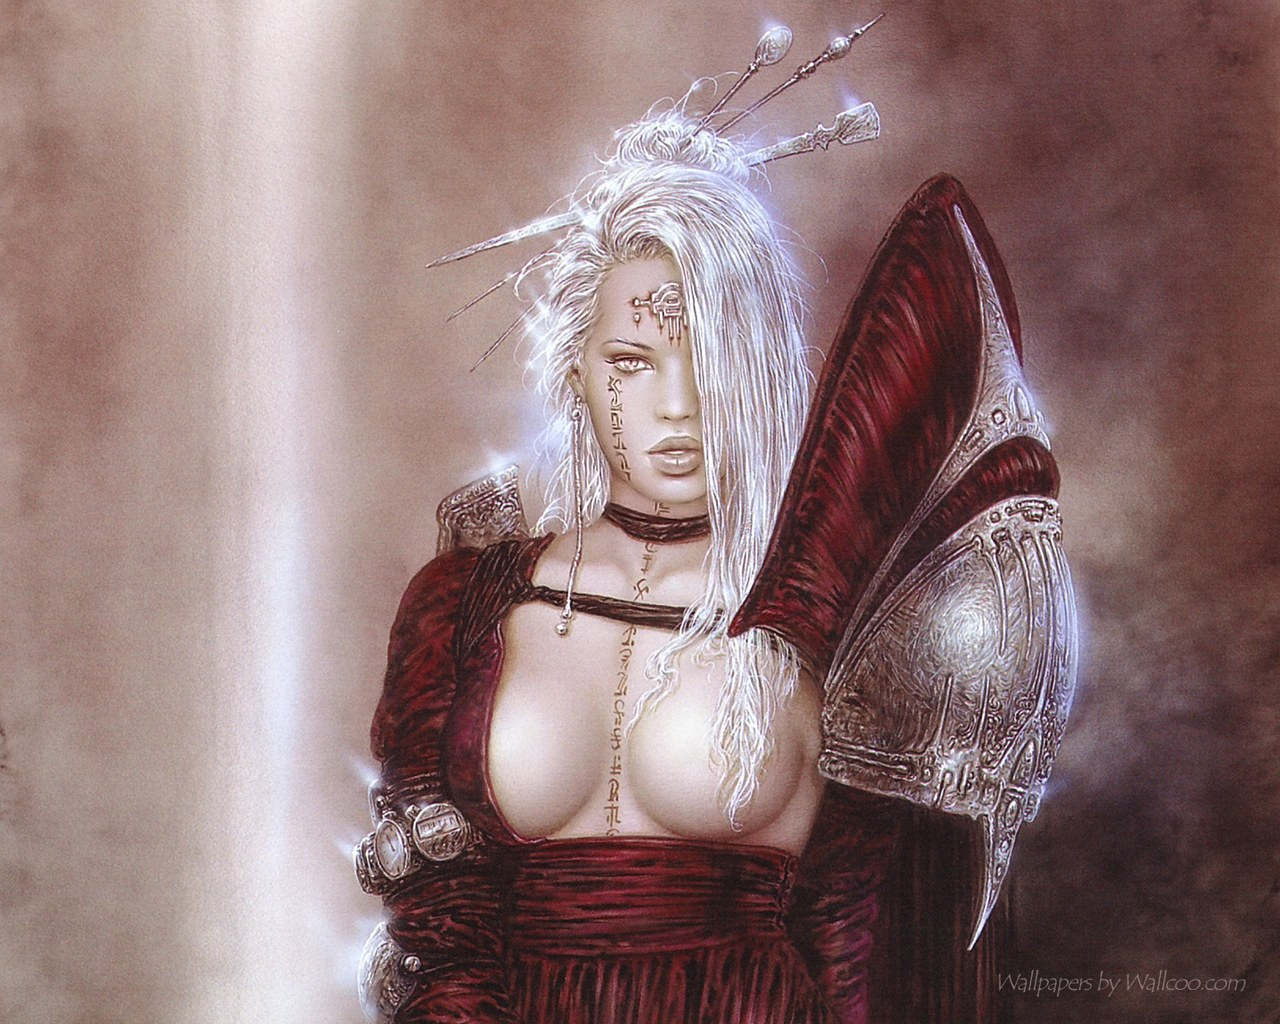 Remarkable, luis royo heavy metal think, that